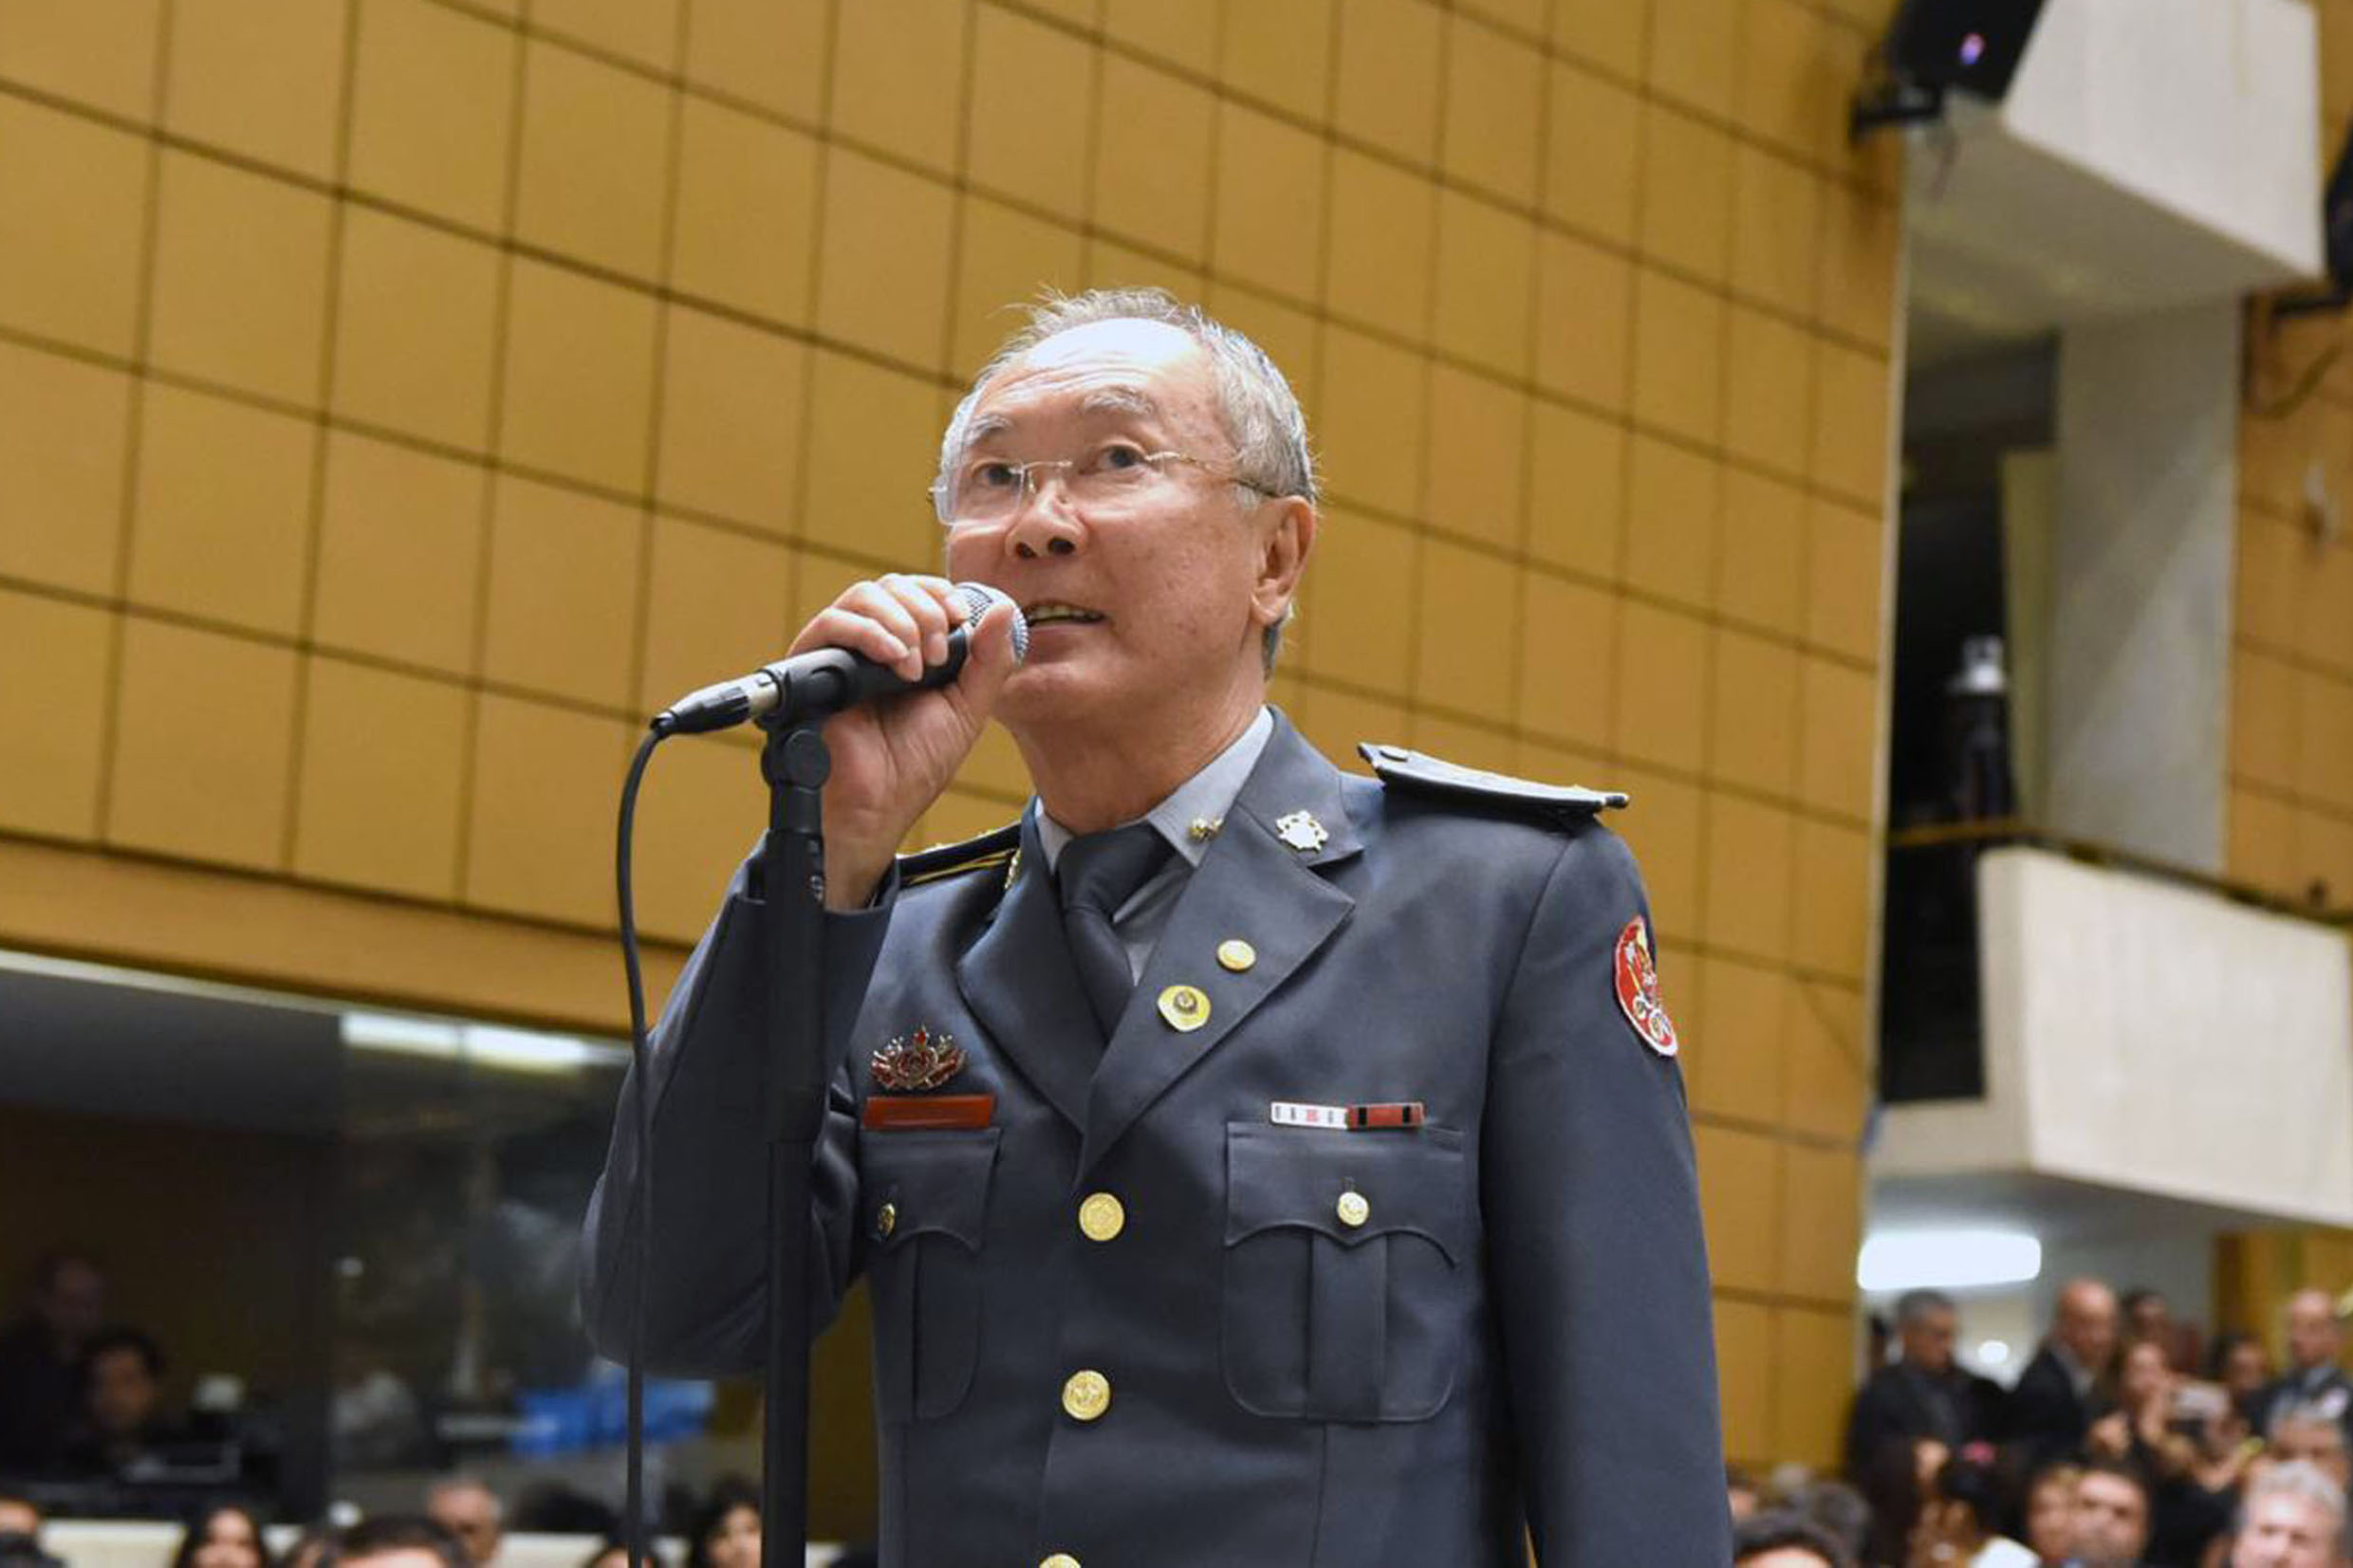 Coronel Nishikawa<a style='float:right' href='https://www3.al.sp.gov.br/repositorio/noticia/N-06-2020/fg250523.jpg' target=_blank><img src='/_img/material-file-download-white.png' width='14px' alt='Clique para baixar a imagem'></a>